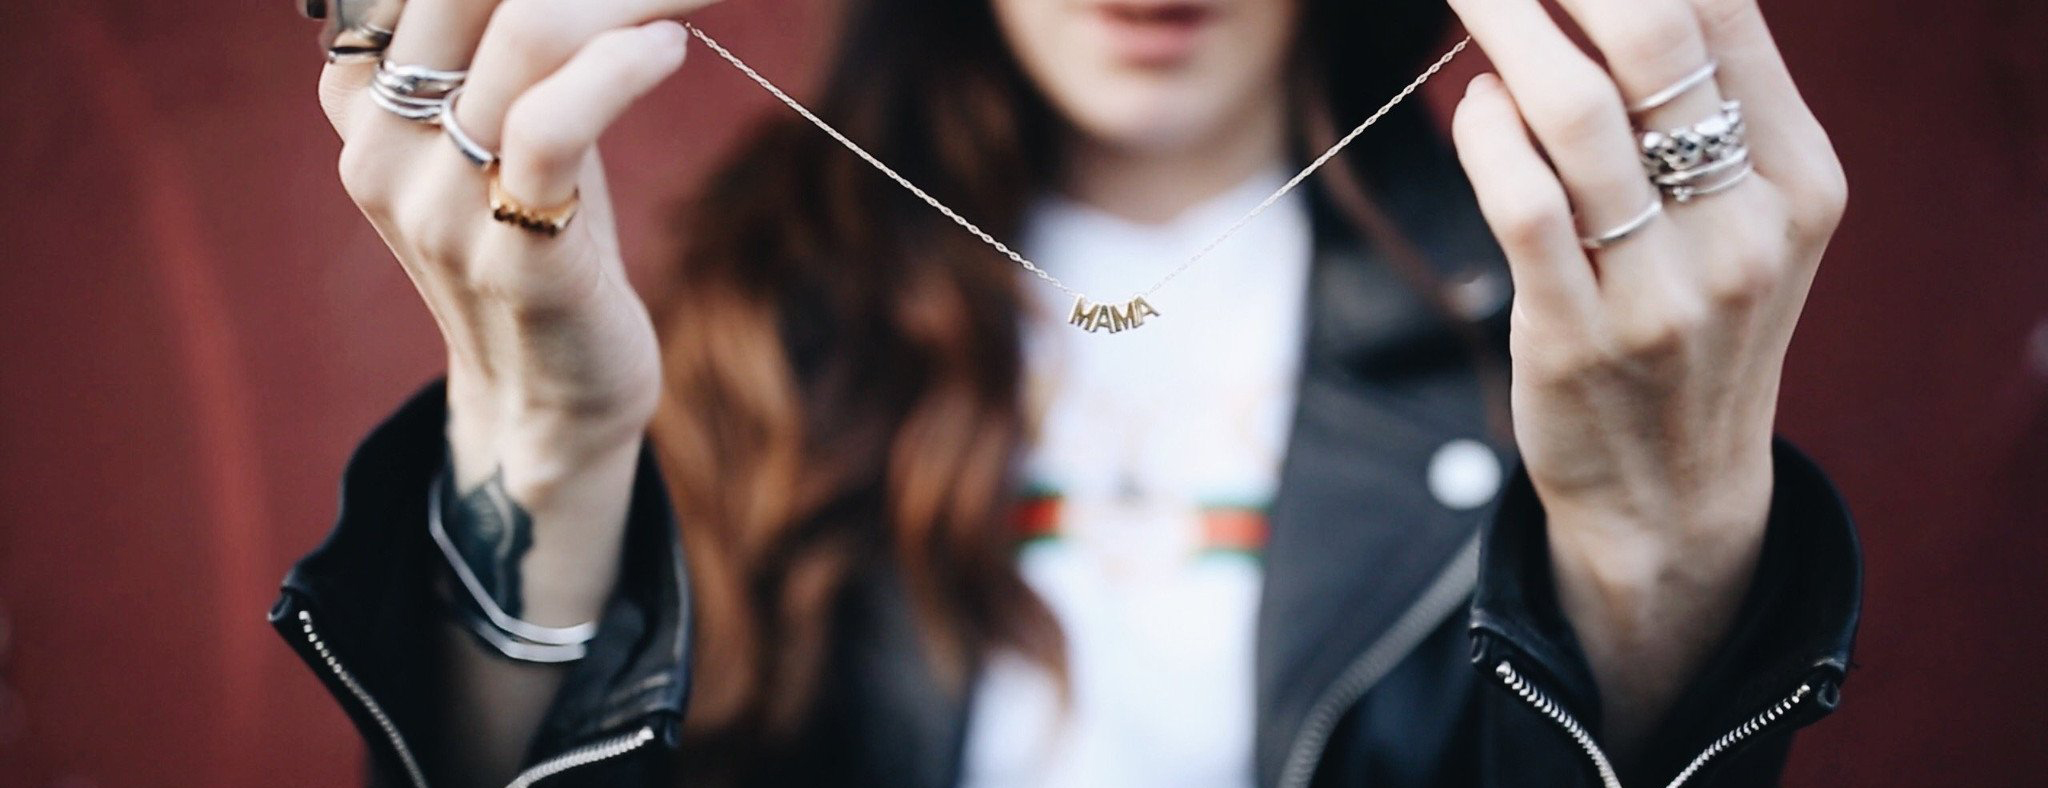 Cult of Youth founder Kelly Seymour holding her signature Mama chain